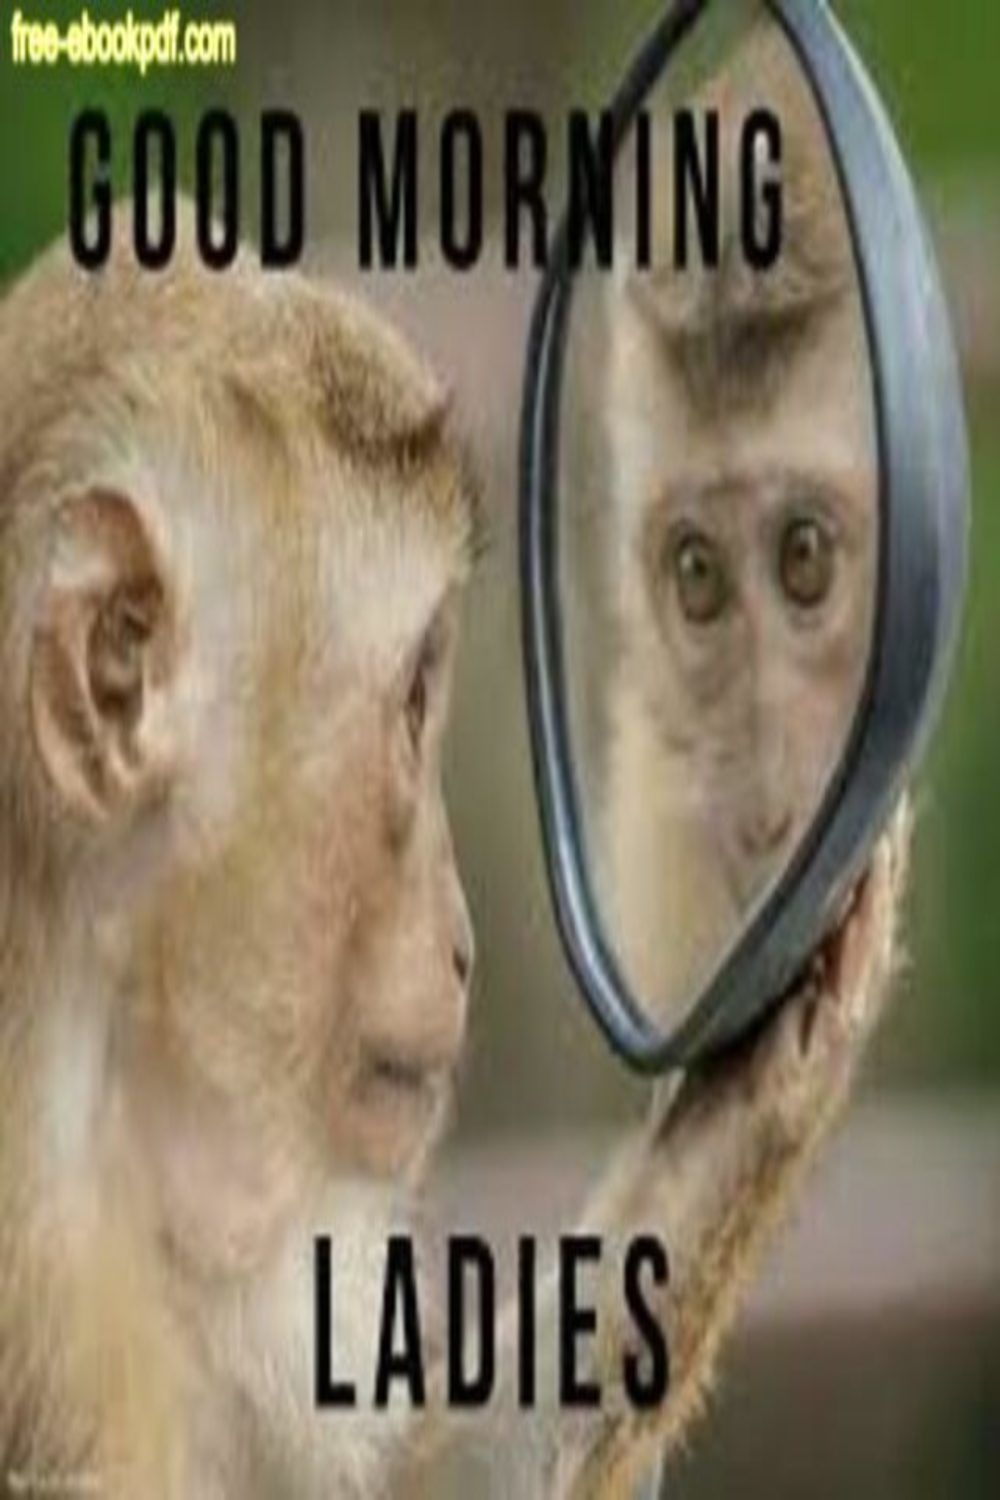 Funny Ways To Say Good Morning Over Text Funny Good Morning Memes Funny Good Morning Images Good Morning Texts